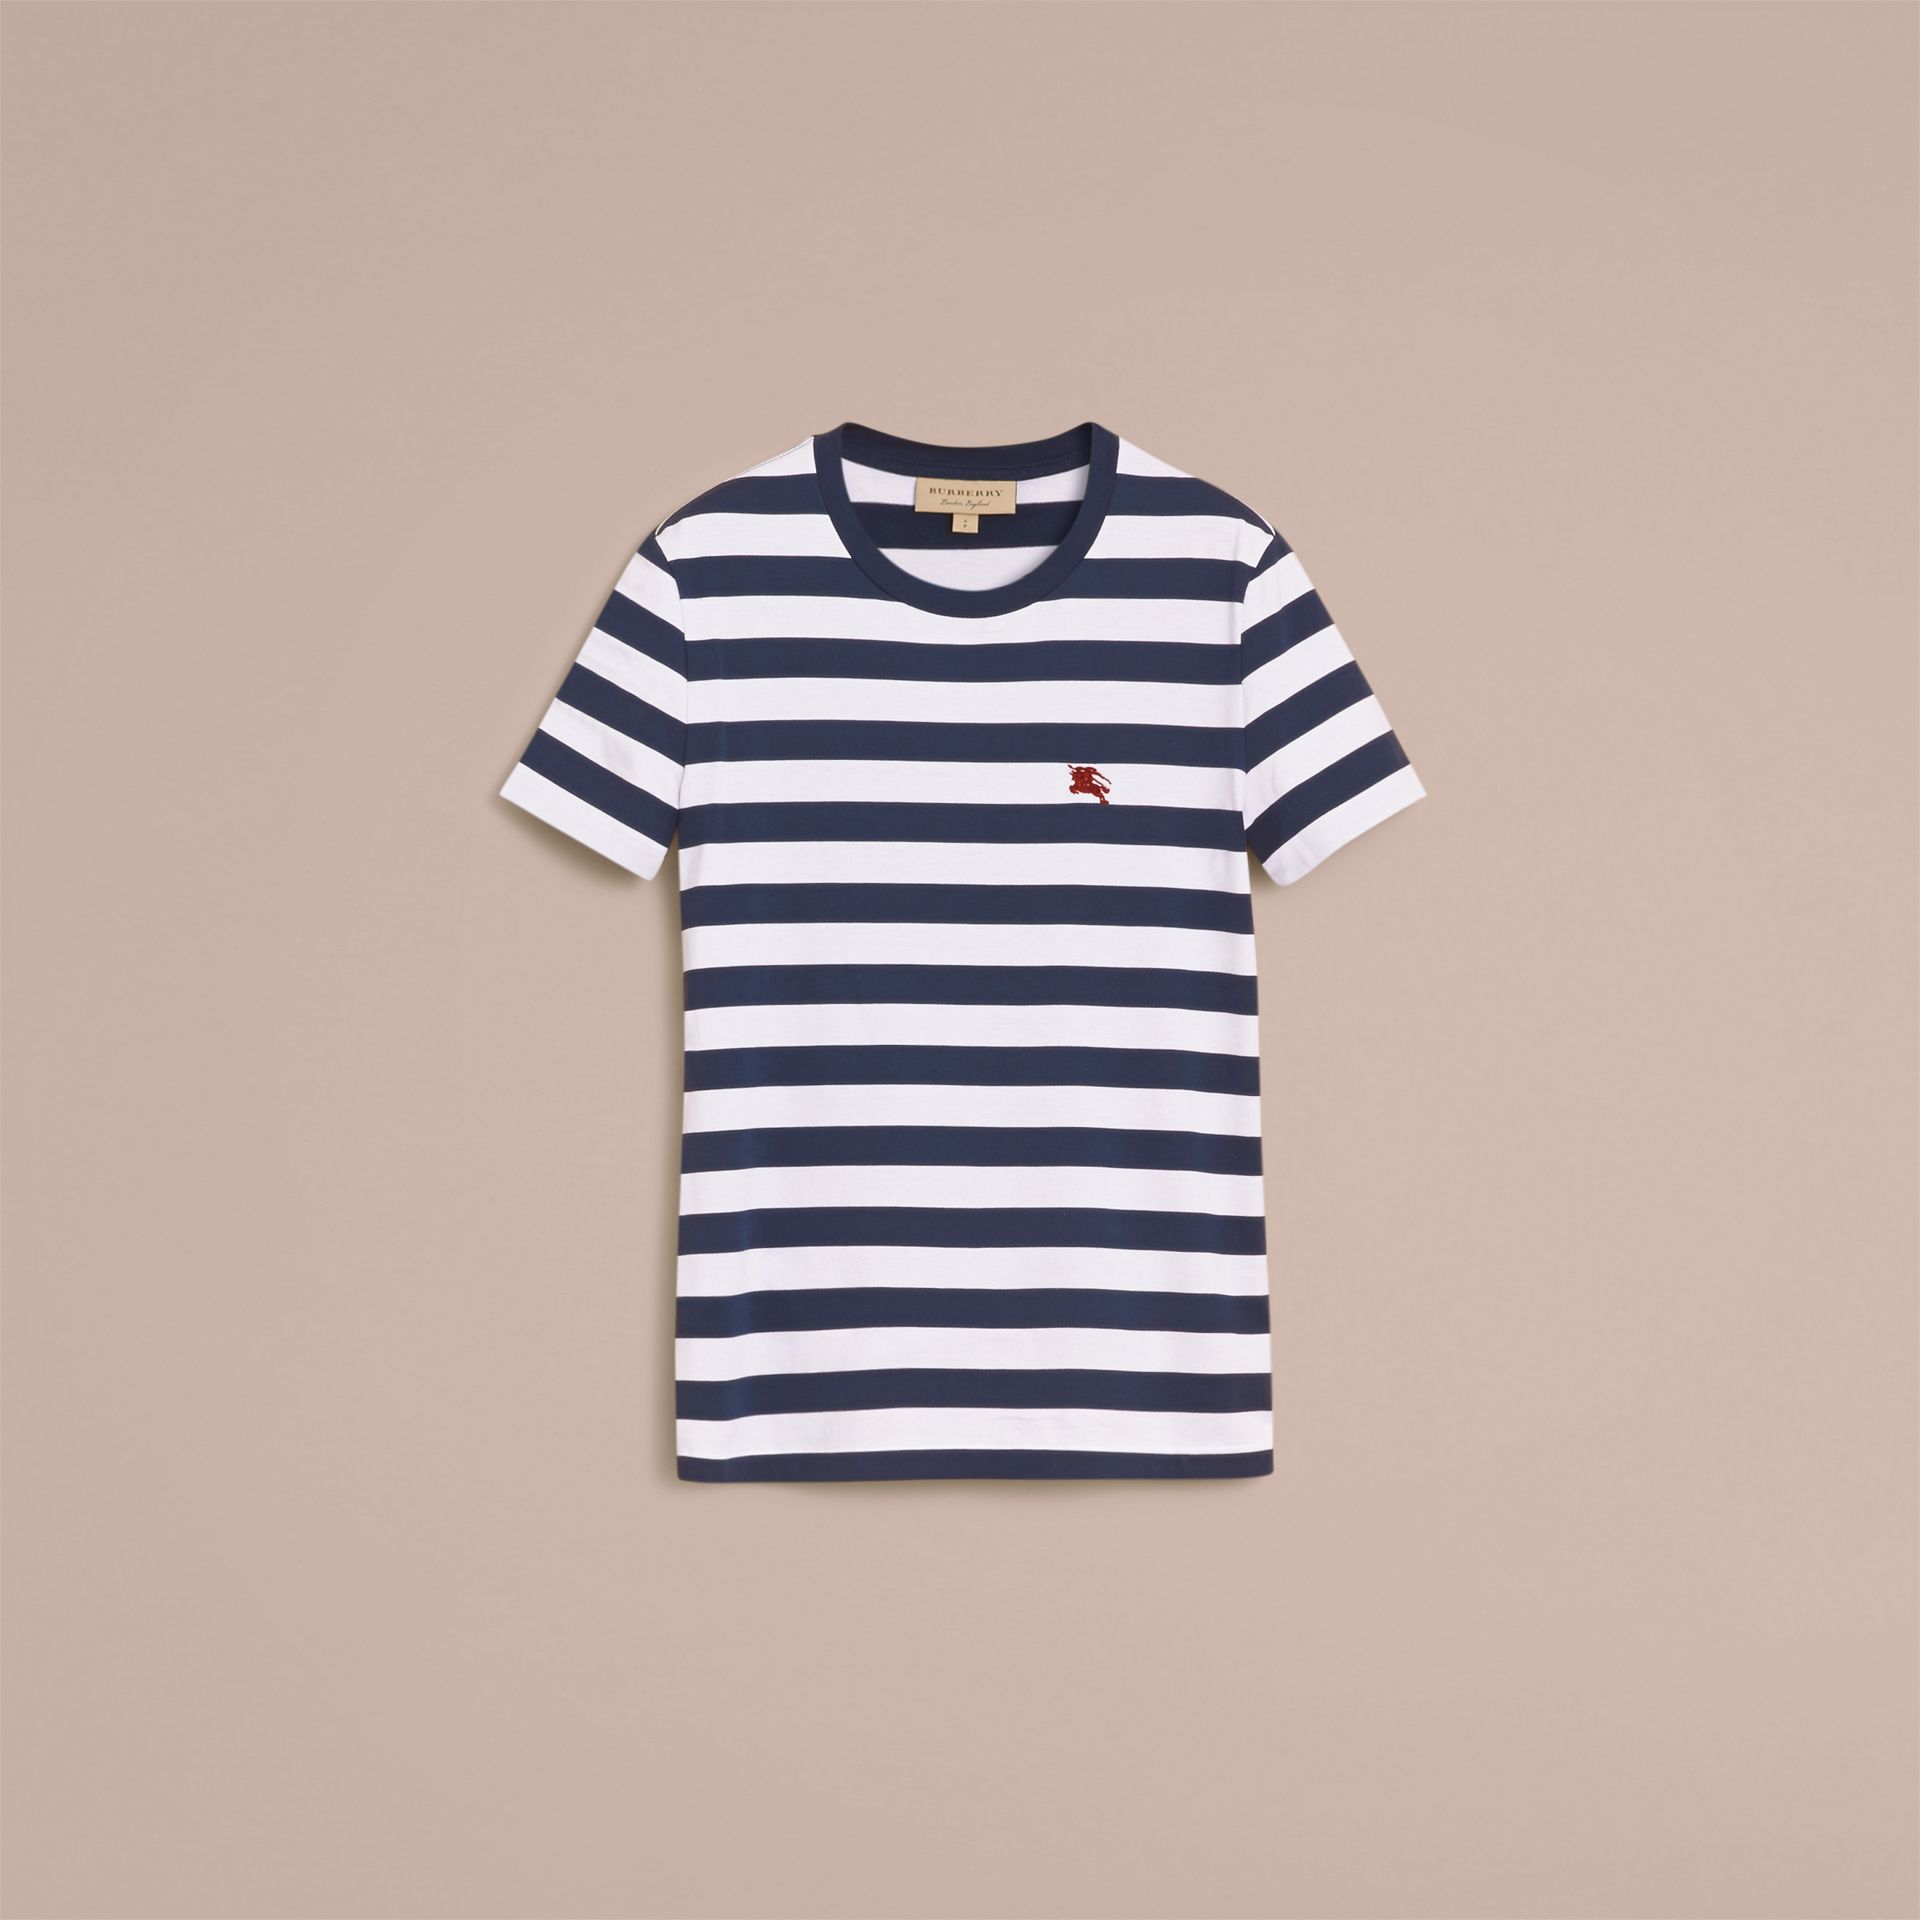 Striped Cotton T-Shirt in White/navy - Men | Burberry Canada - gallery image 4